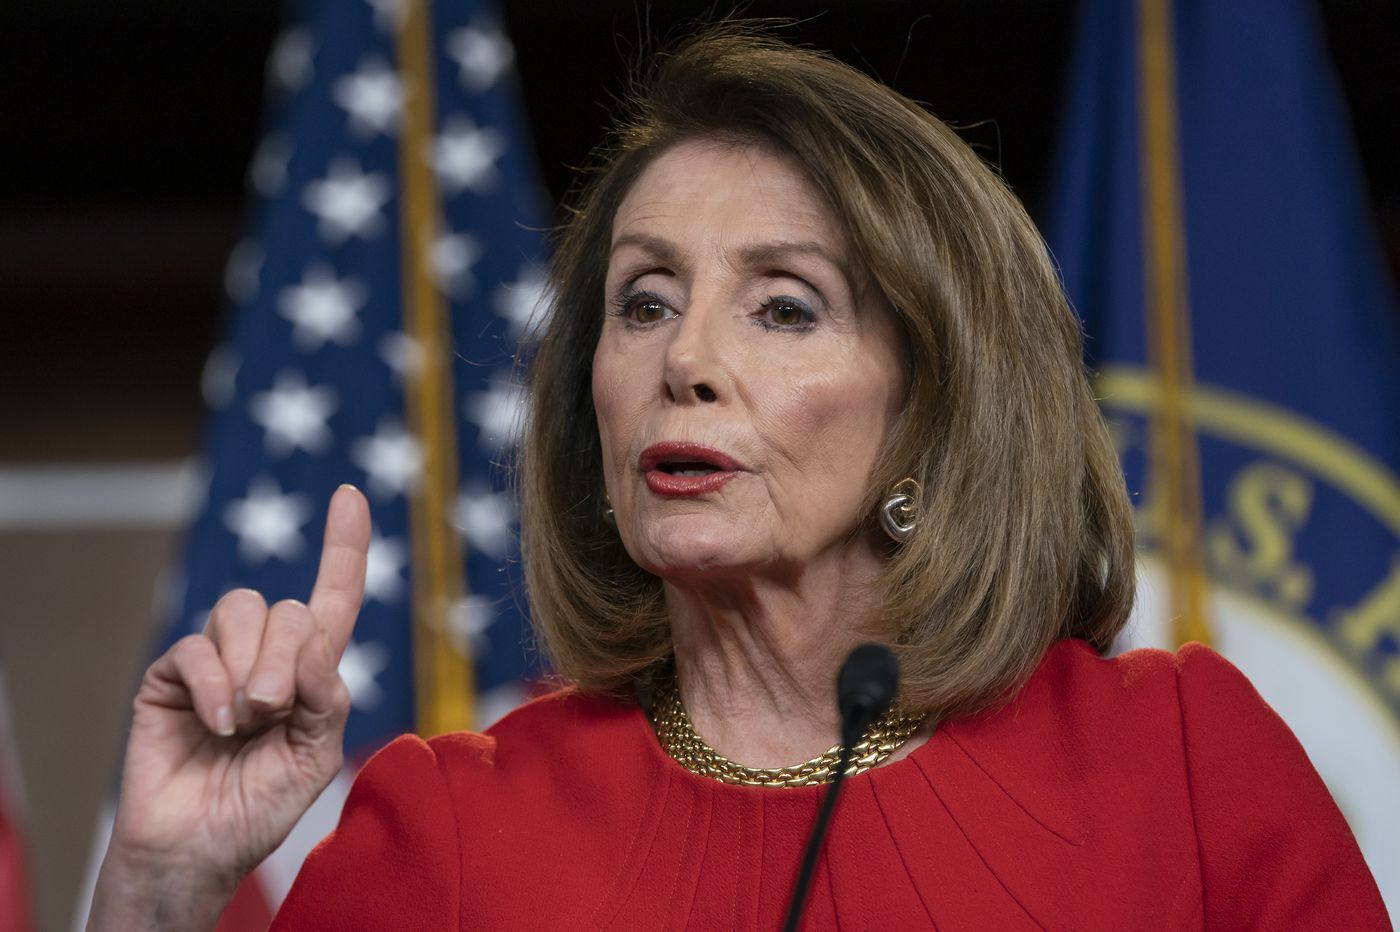 Pelosi pushes back on impeachment as more Democrats call for proceedings